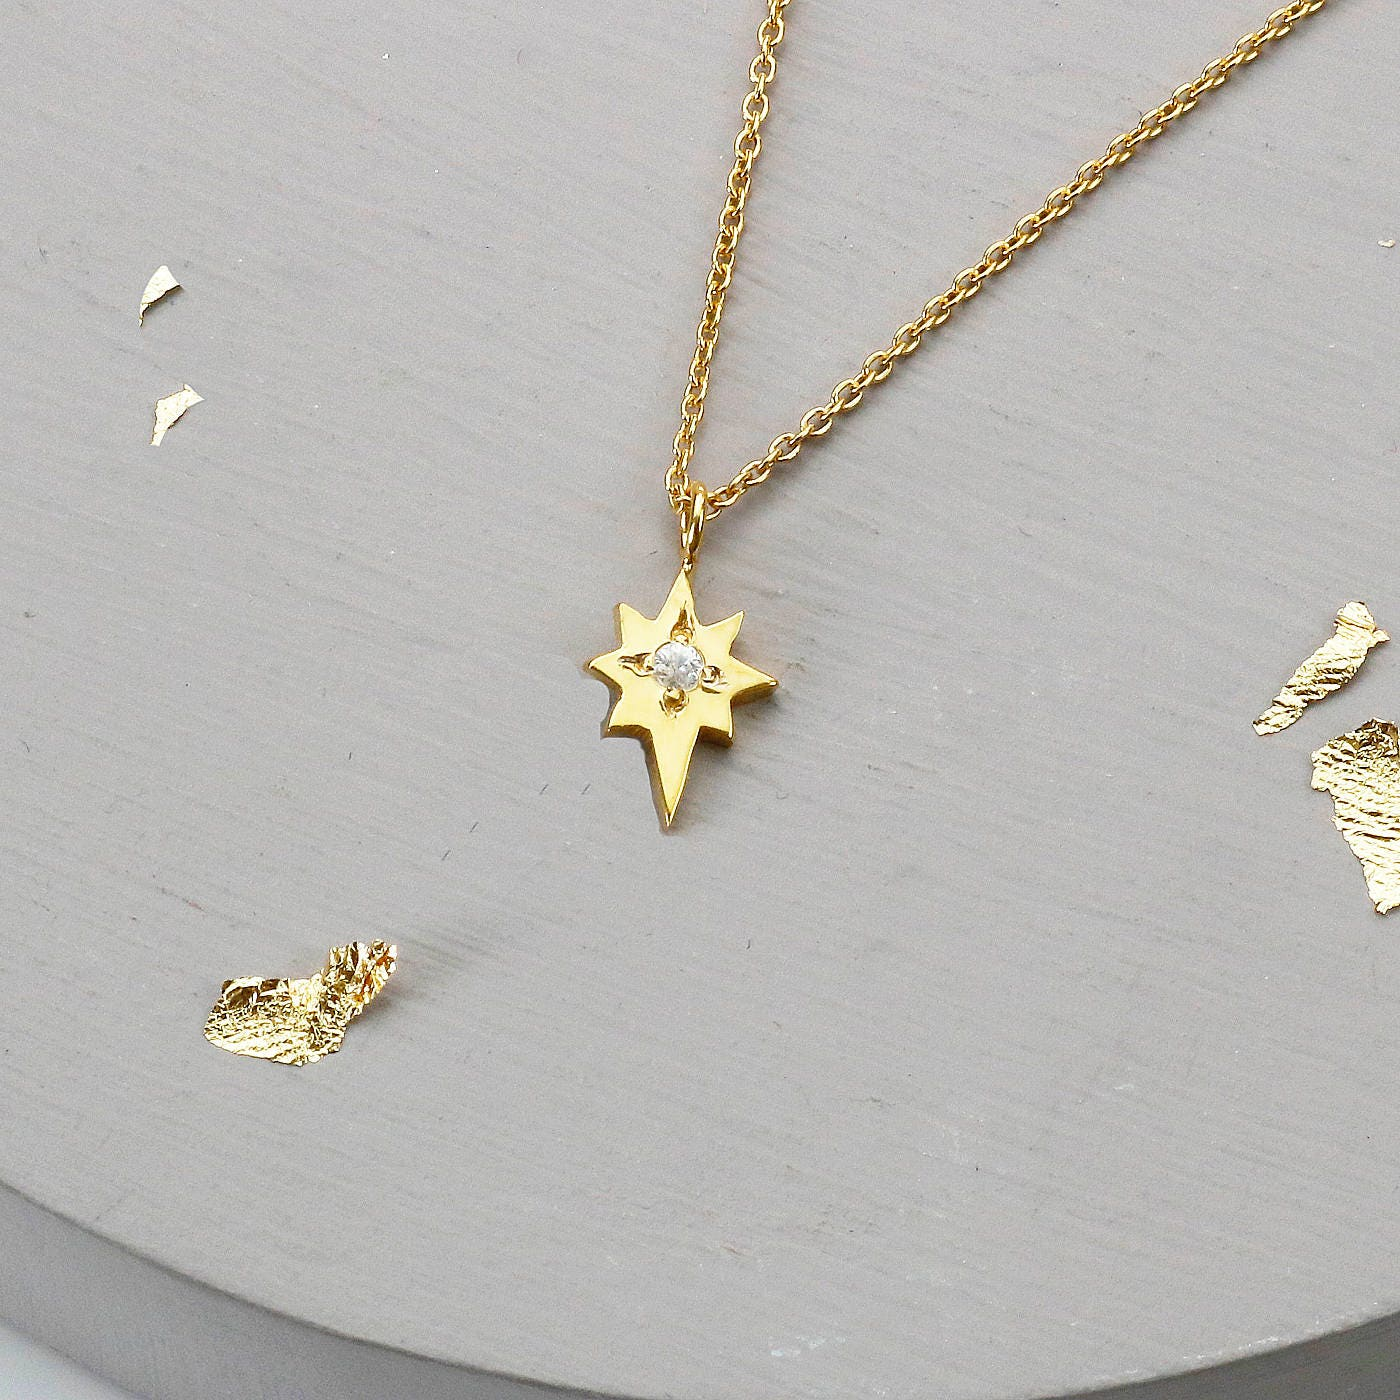 zoom delicate layla product pendant star aluna necklace north mae image gold